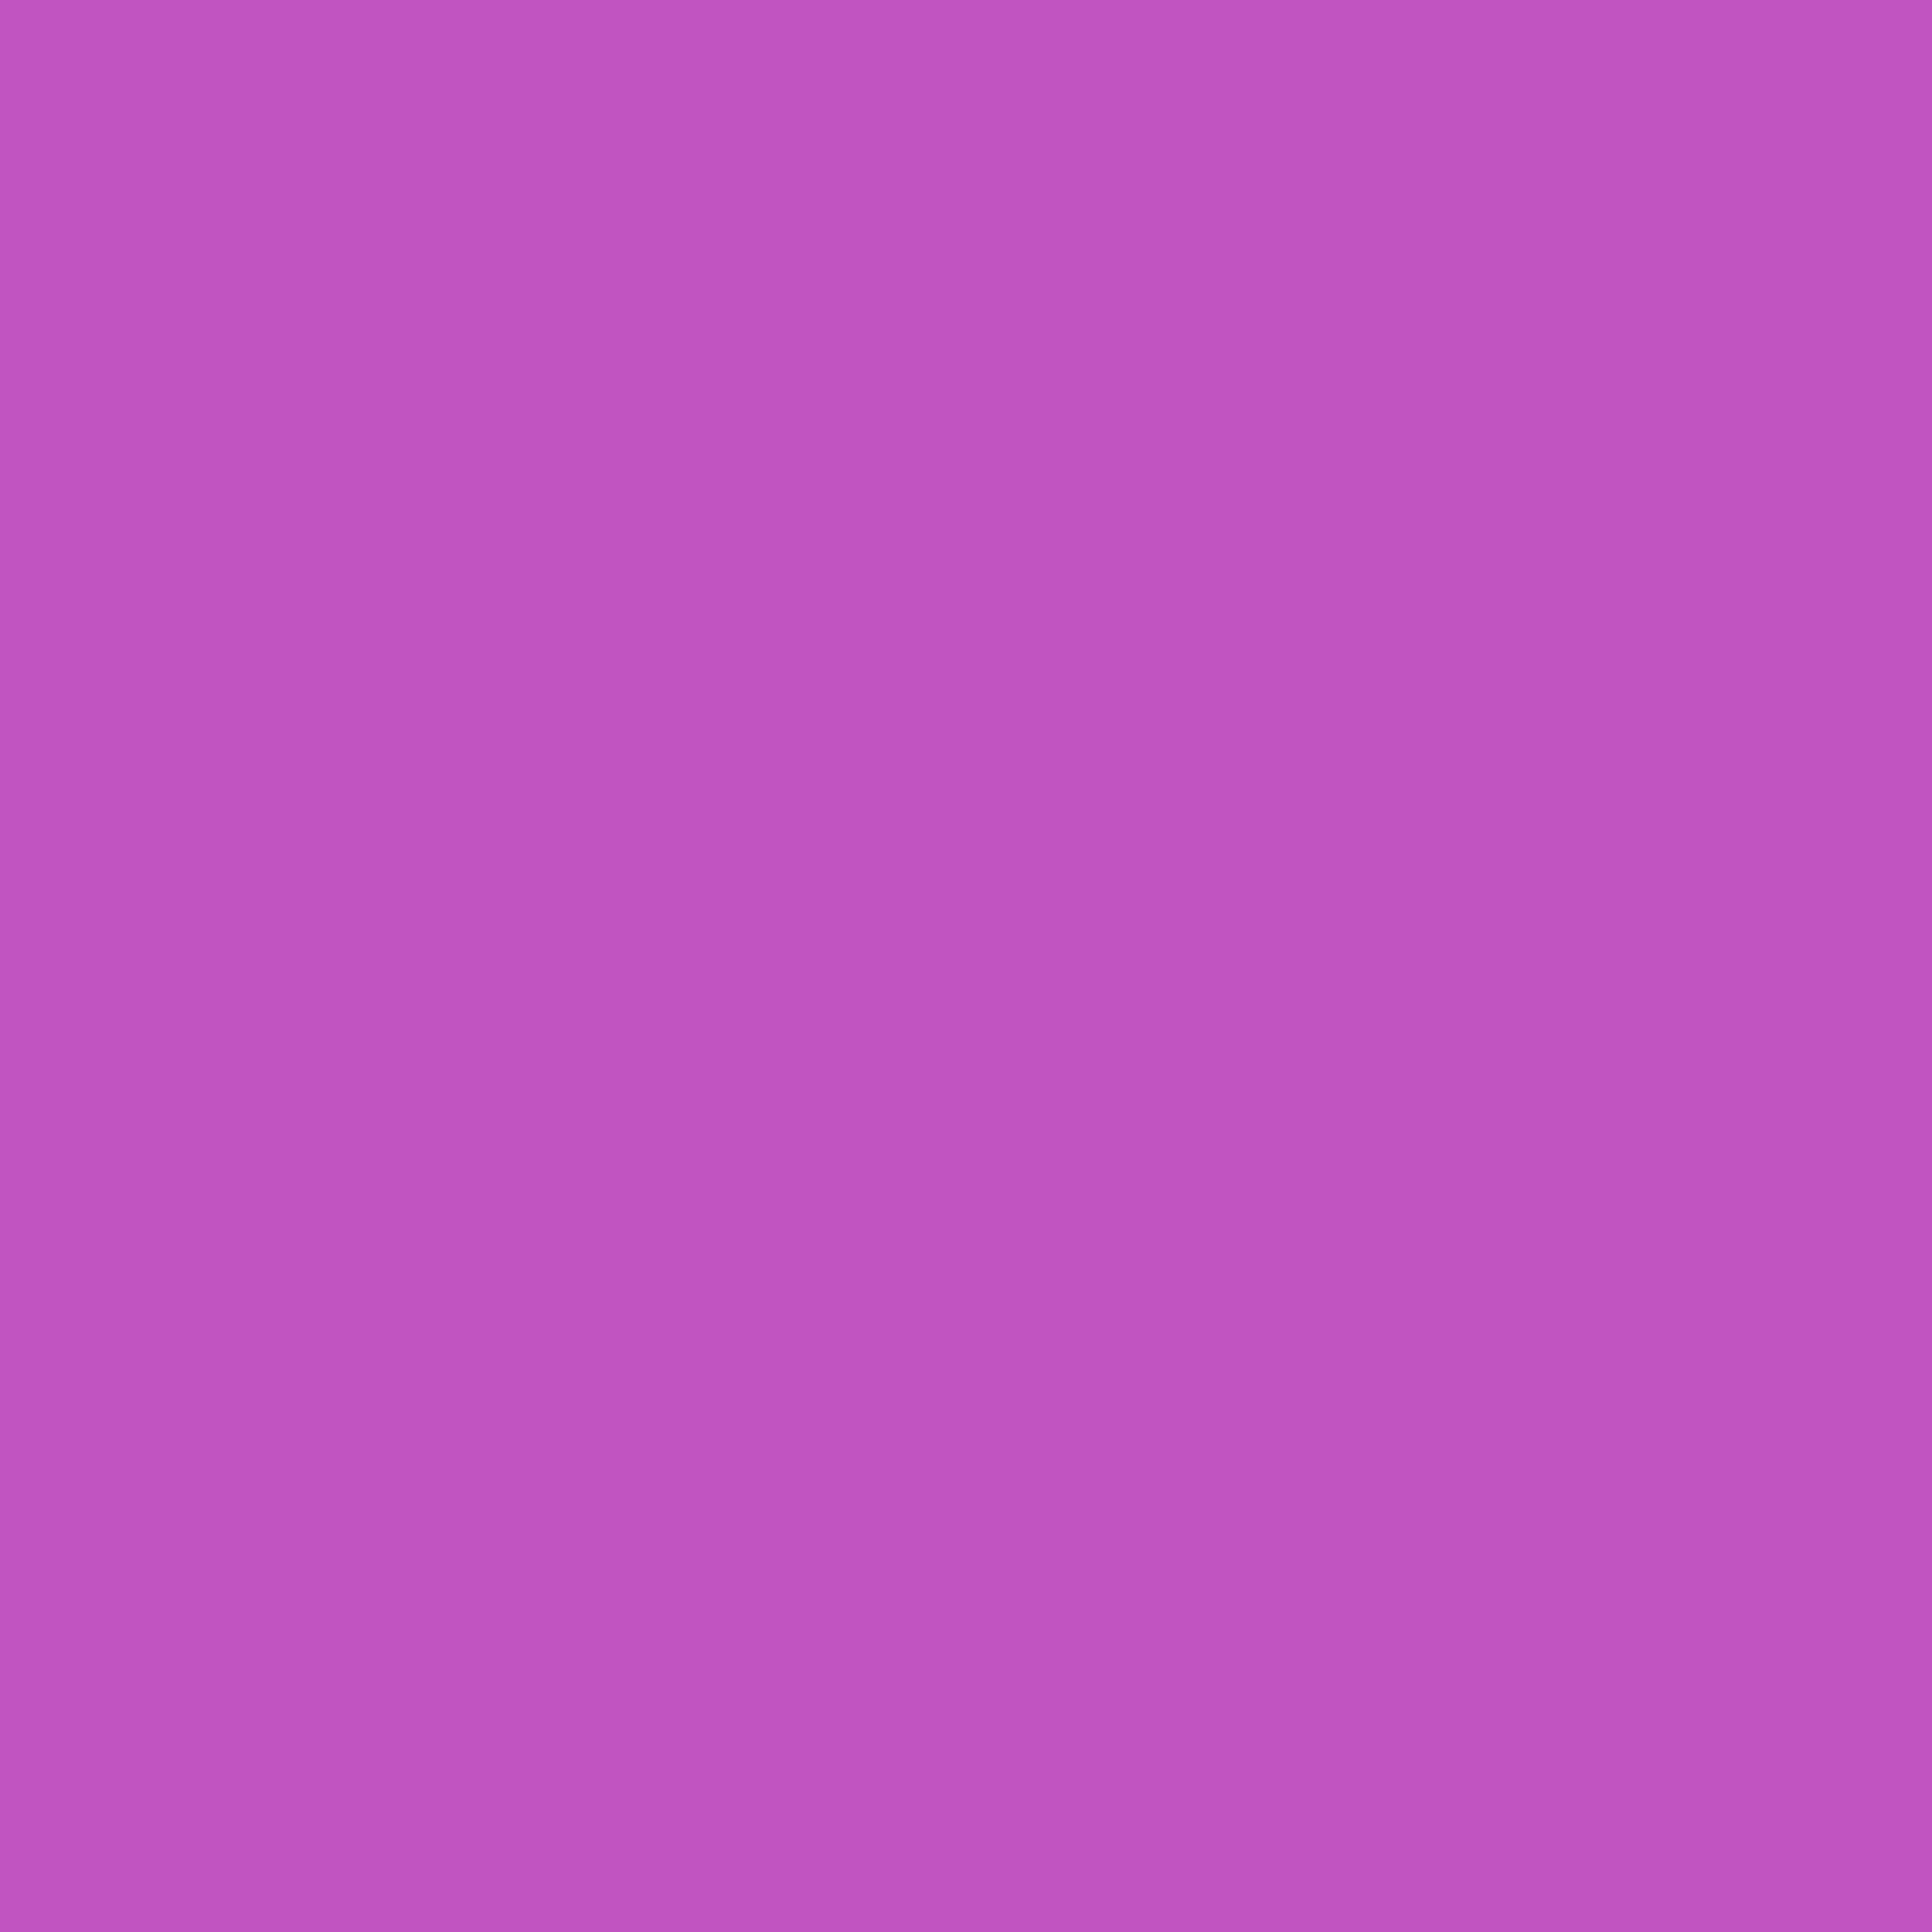 3600x3600 Deep Fuchsia Solid Color Background